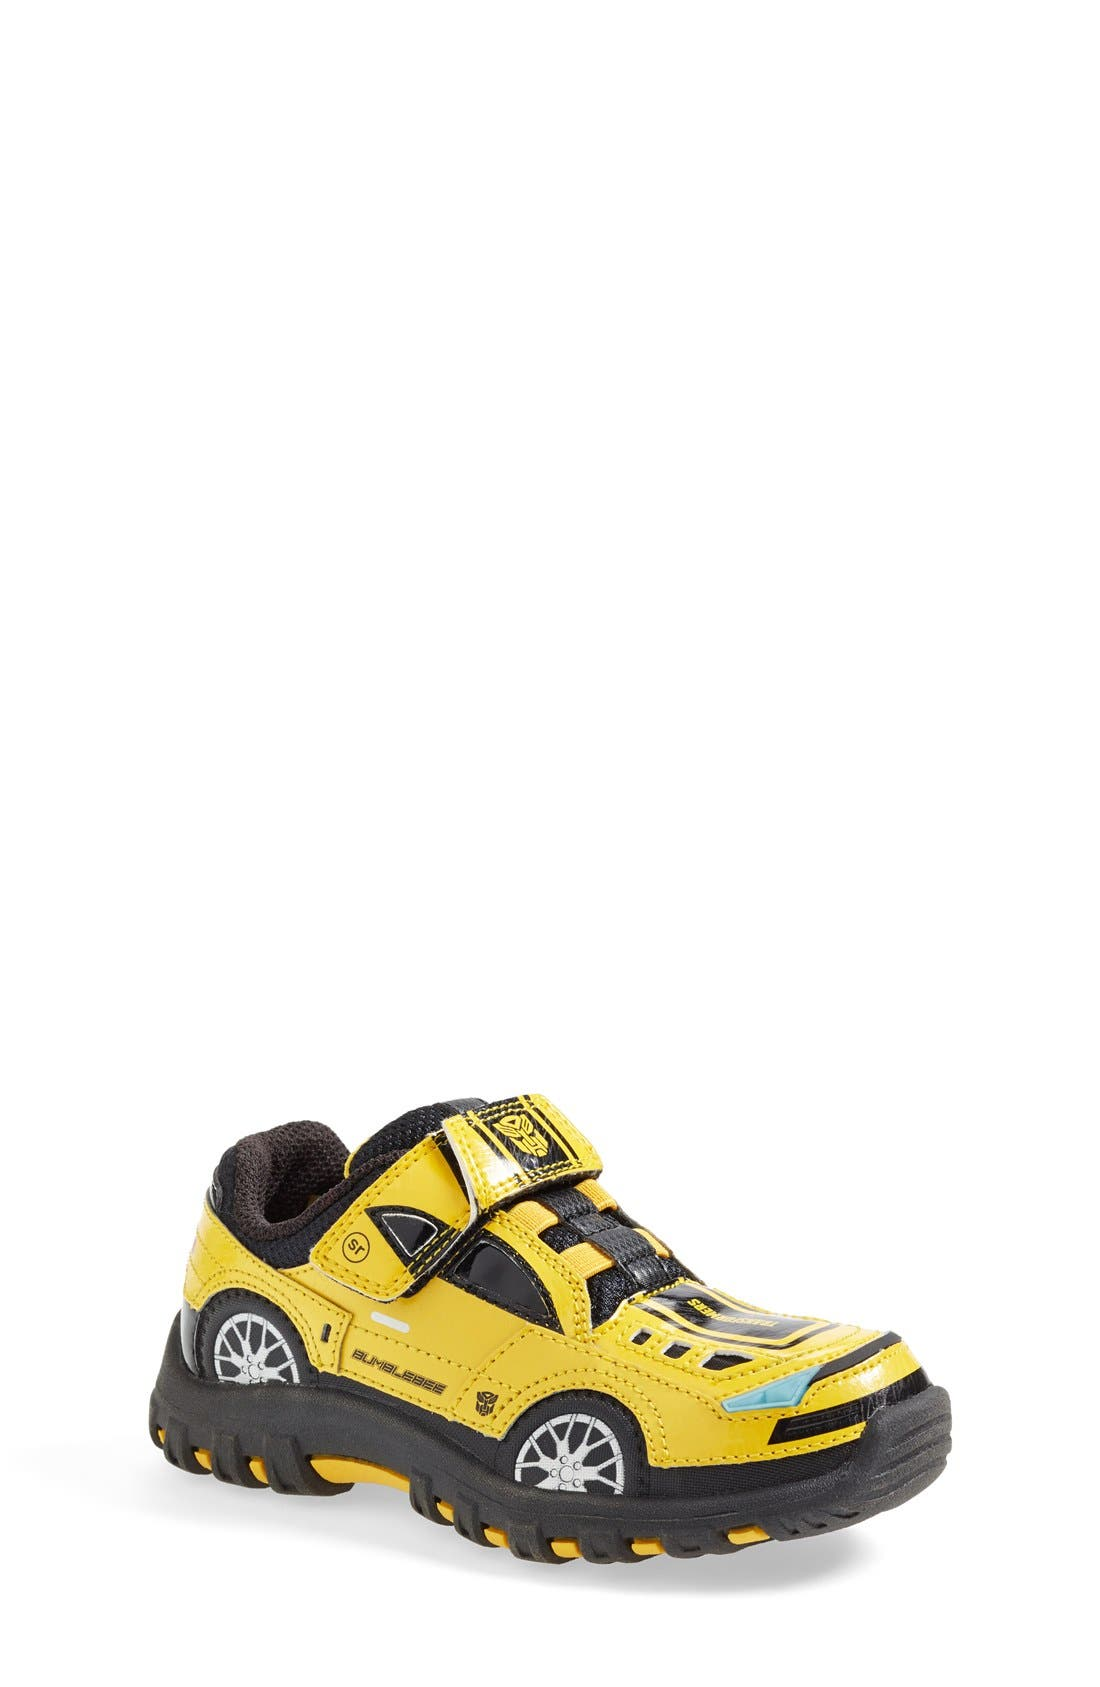 Alternate Image 1 Selected - Stride Rite 'Bumblebee™' Light-Up Sneaker (Online Only) (Walker, Toddler & Little Kid)